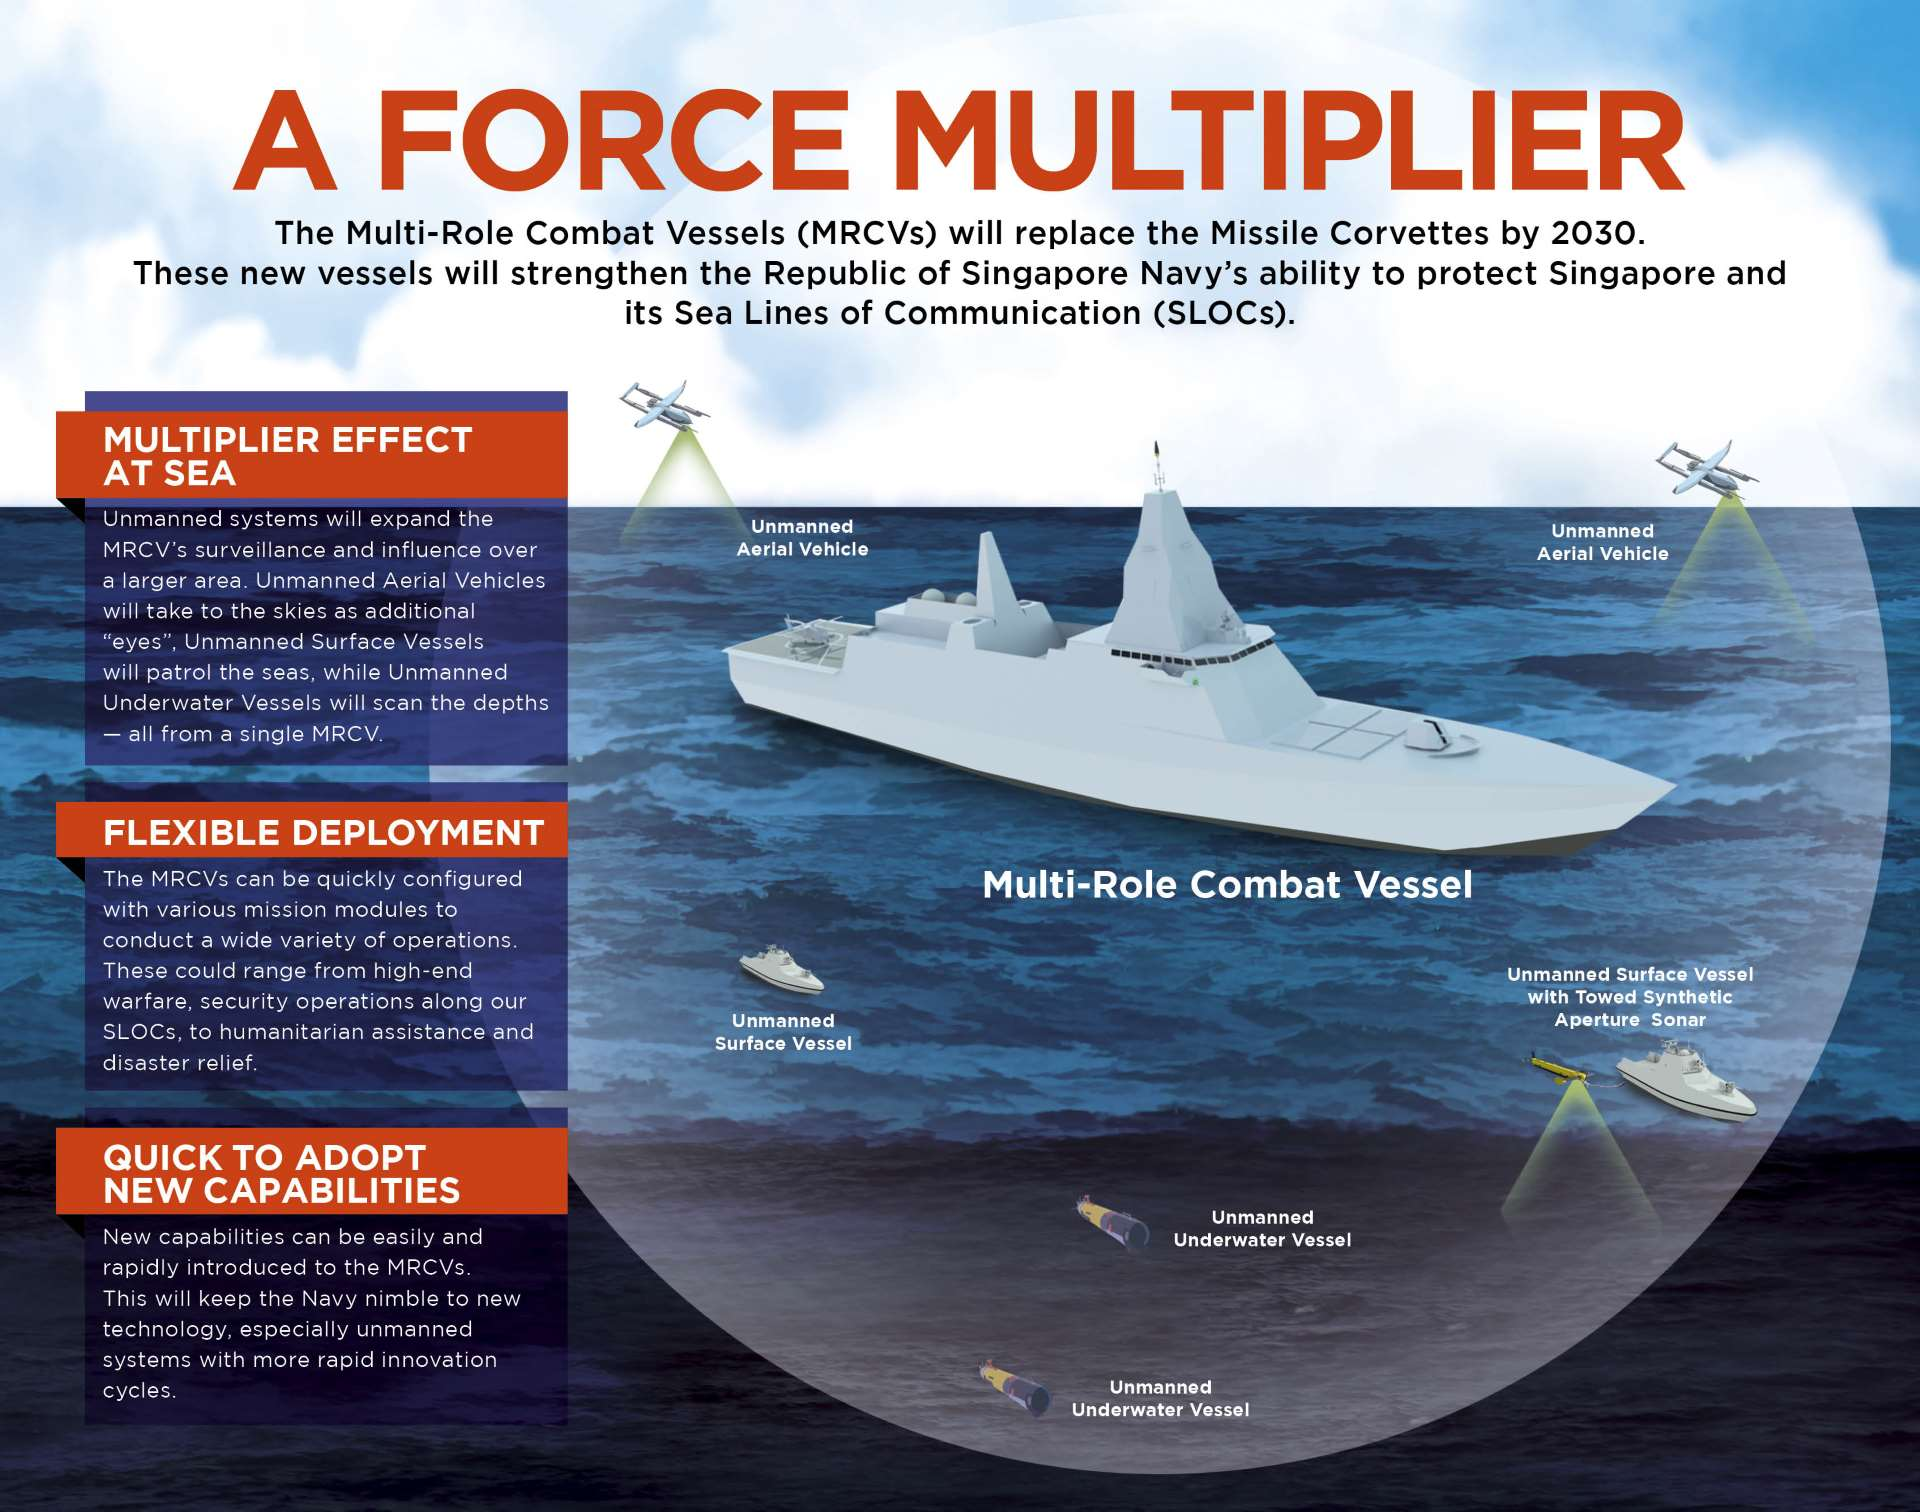 Multi-Role Combat Vessels